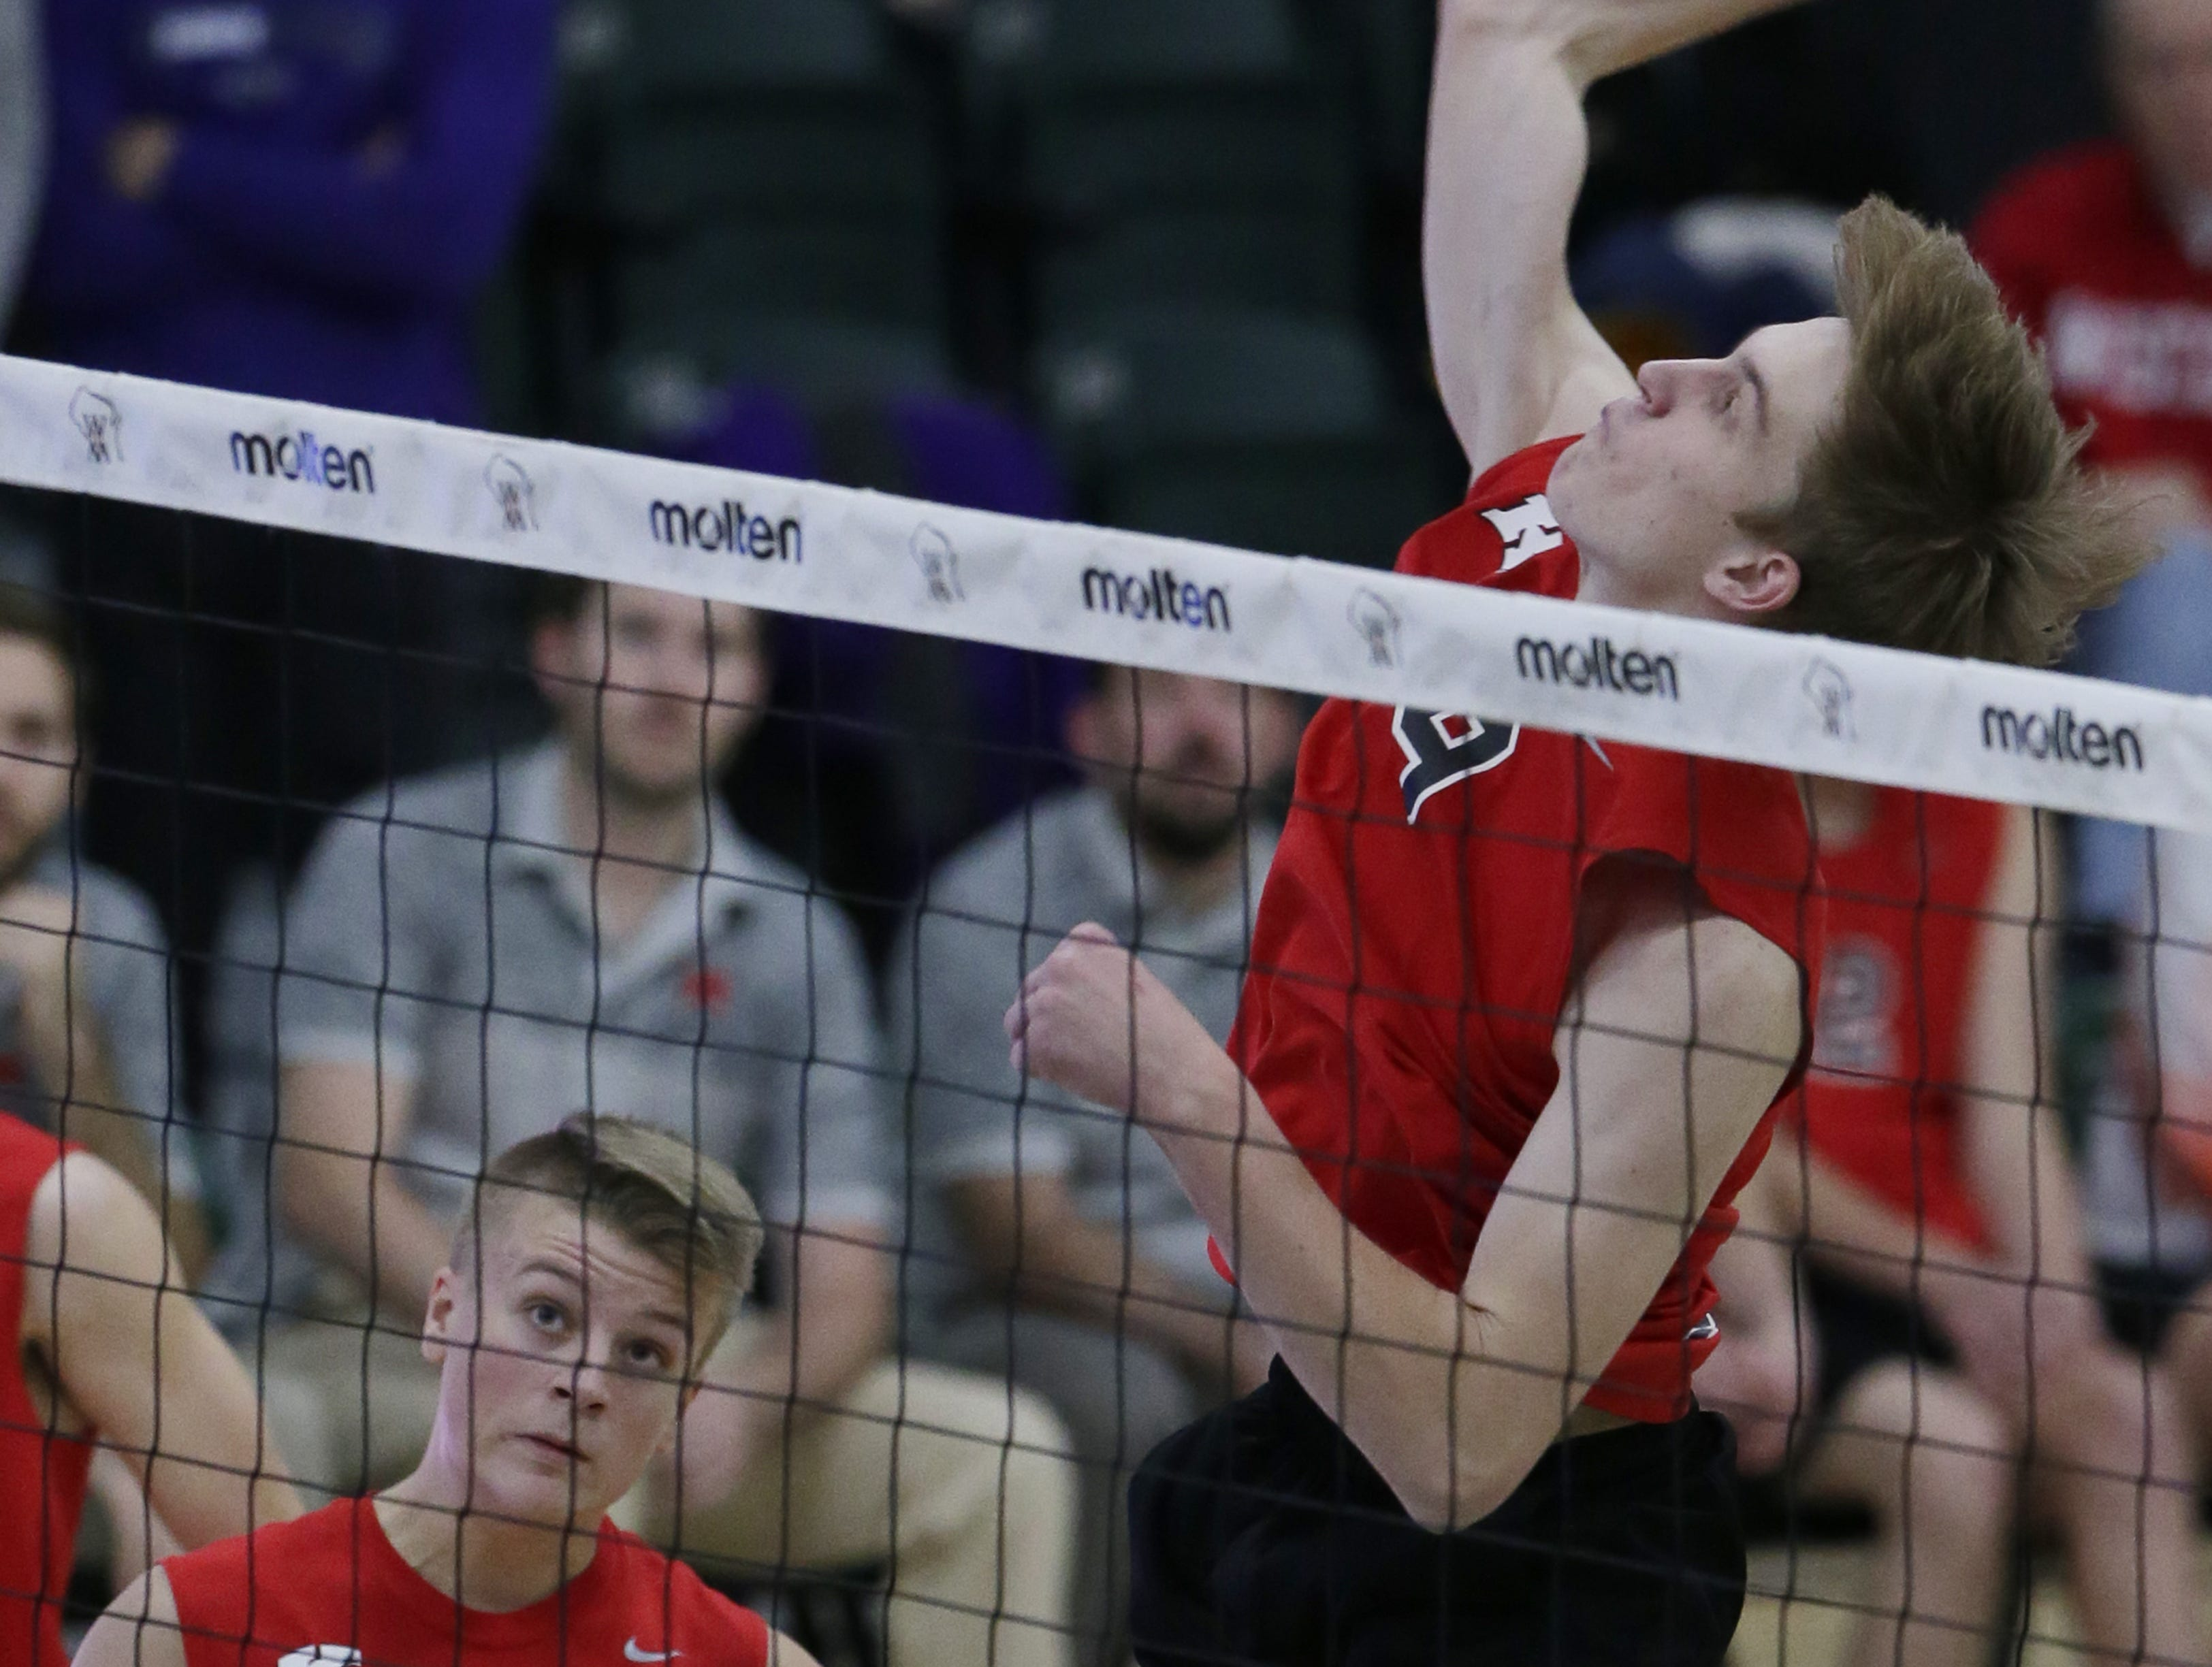 Kimberly's Tommy Clausz goes up for a hit during their game.  Kimberly Papermakers played Kenosha Indian Trail Hawks in Division 1 WIAA boys volleyball playoff semi-final, Saturday, November 10, 2018 at Wisconsin Lutheran College in Milwaukee, Wis. Joe Sienkiewicz/USA Today NETWORK-Wisconsin